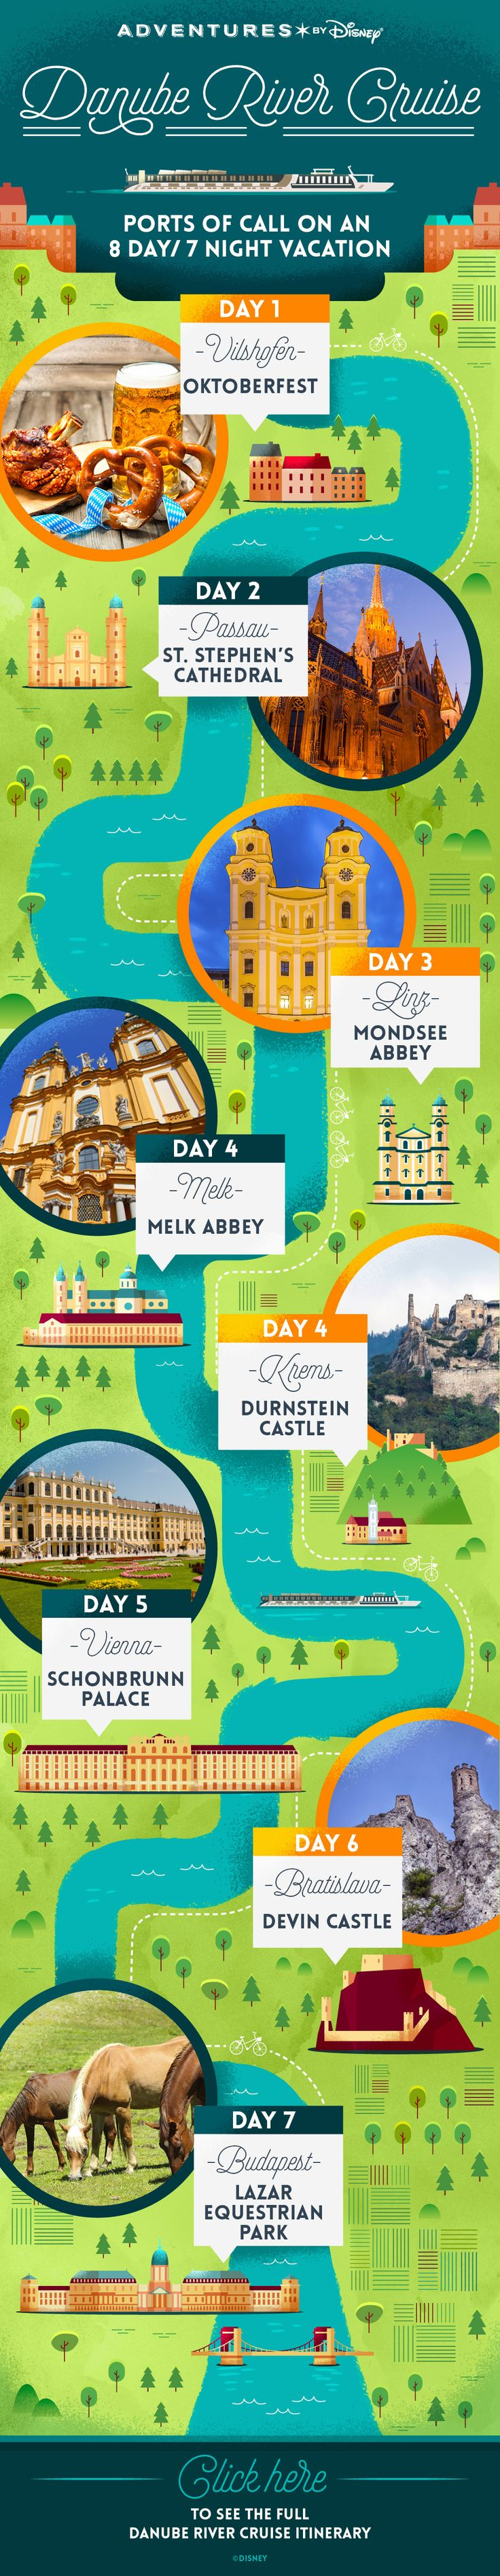 You can enjoy family river cruising to eight unforgettable destinations in four countries on an all-inclusive adventure along the Danube river through the heart of Europe. From Schonbrunn Palace to the famed Melk Abbey in Austria, there is something for the whole family to enjoy!